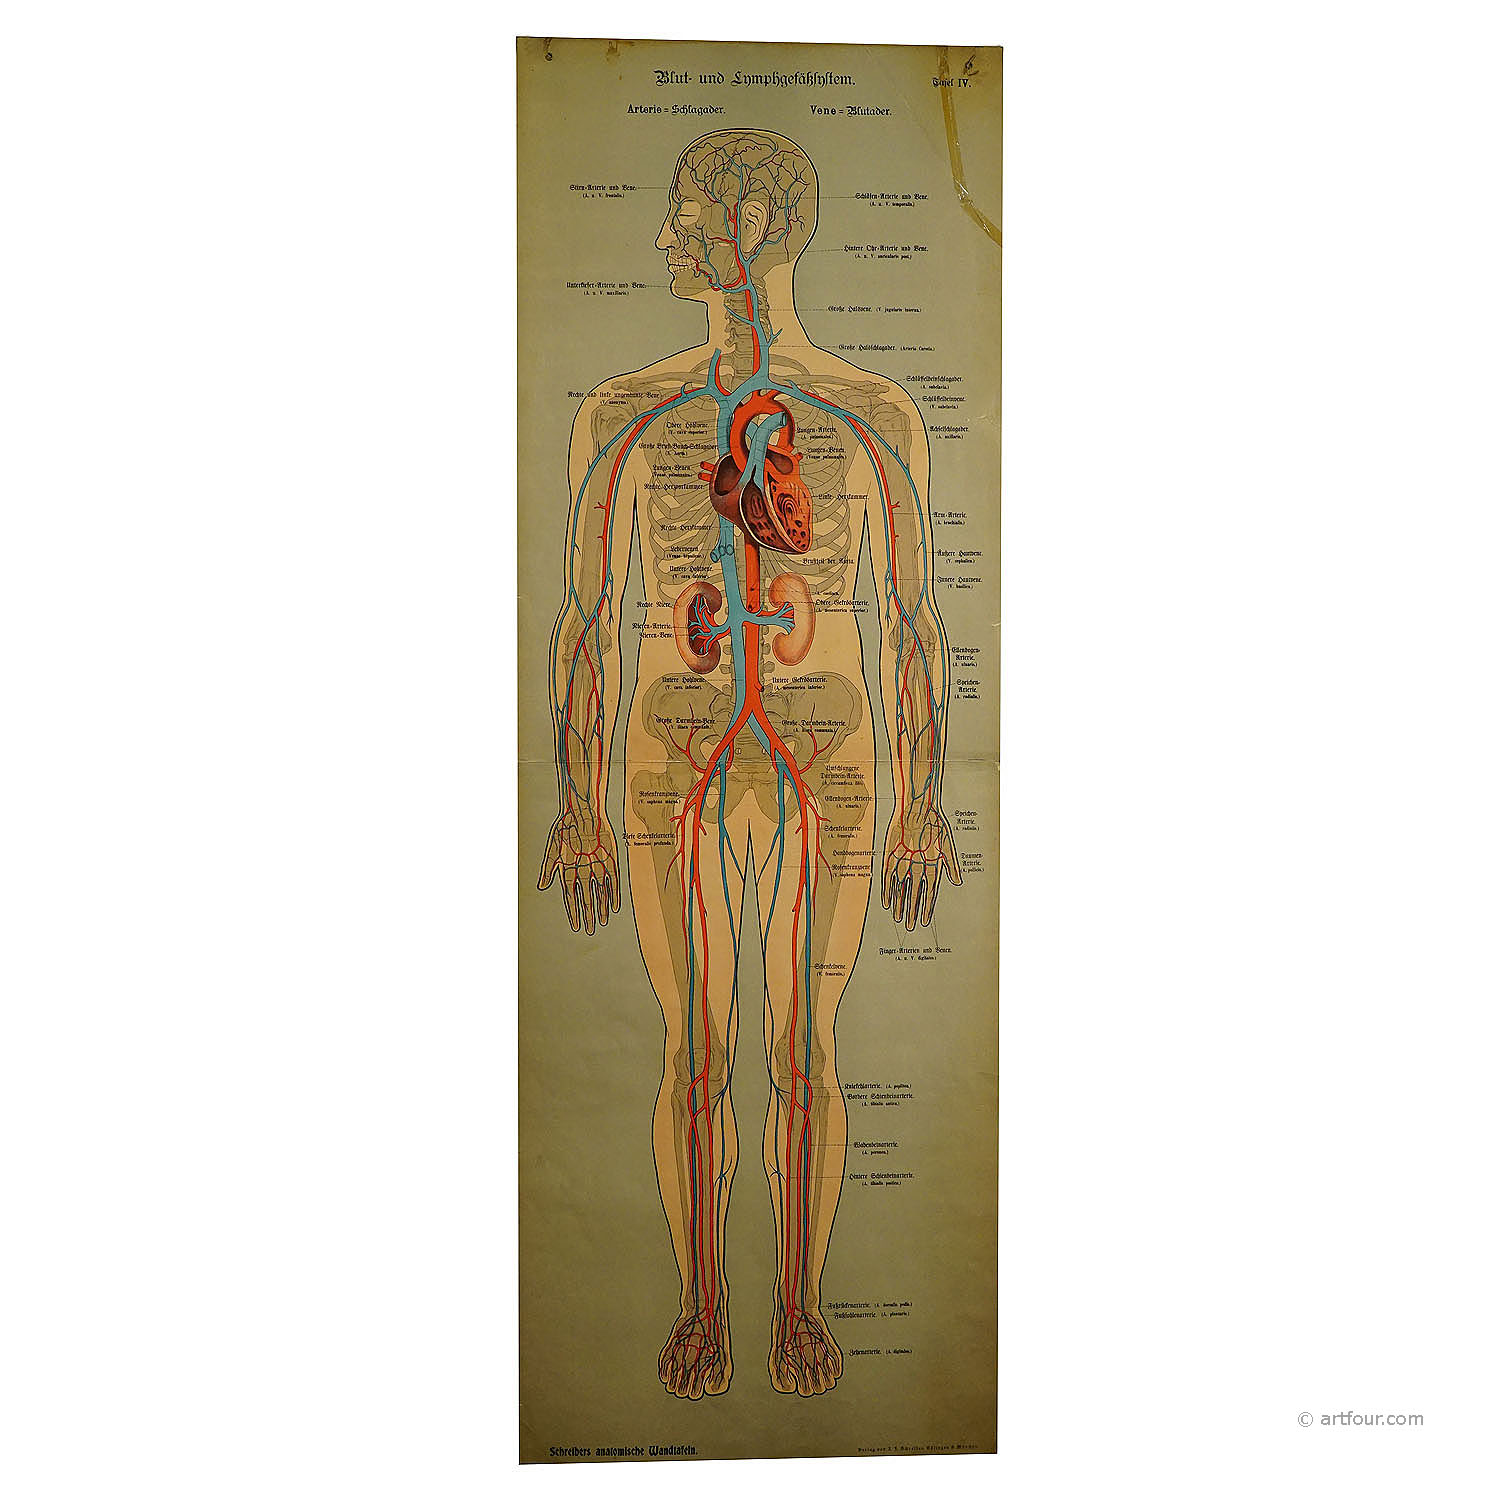 an anatomical wall chart depicting the human lymphatic and blood vessels